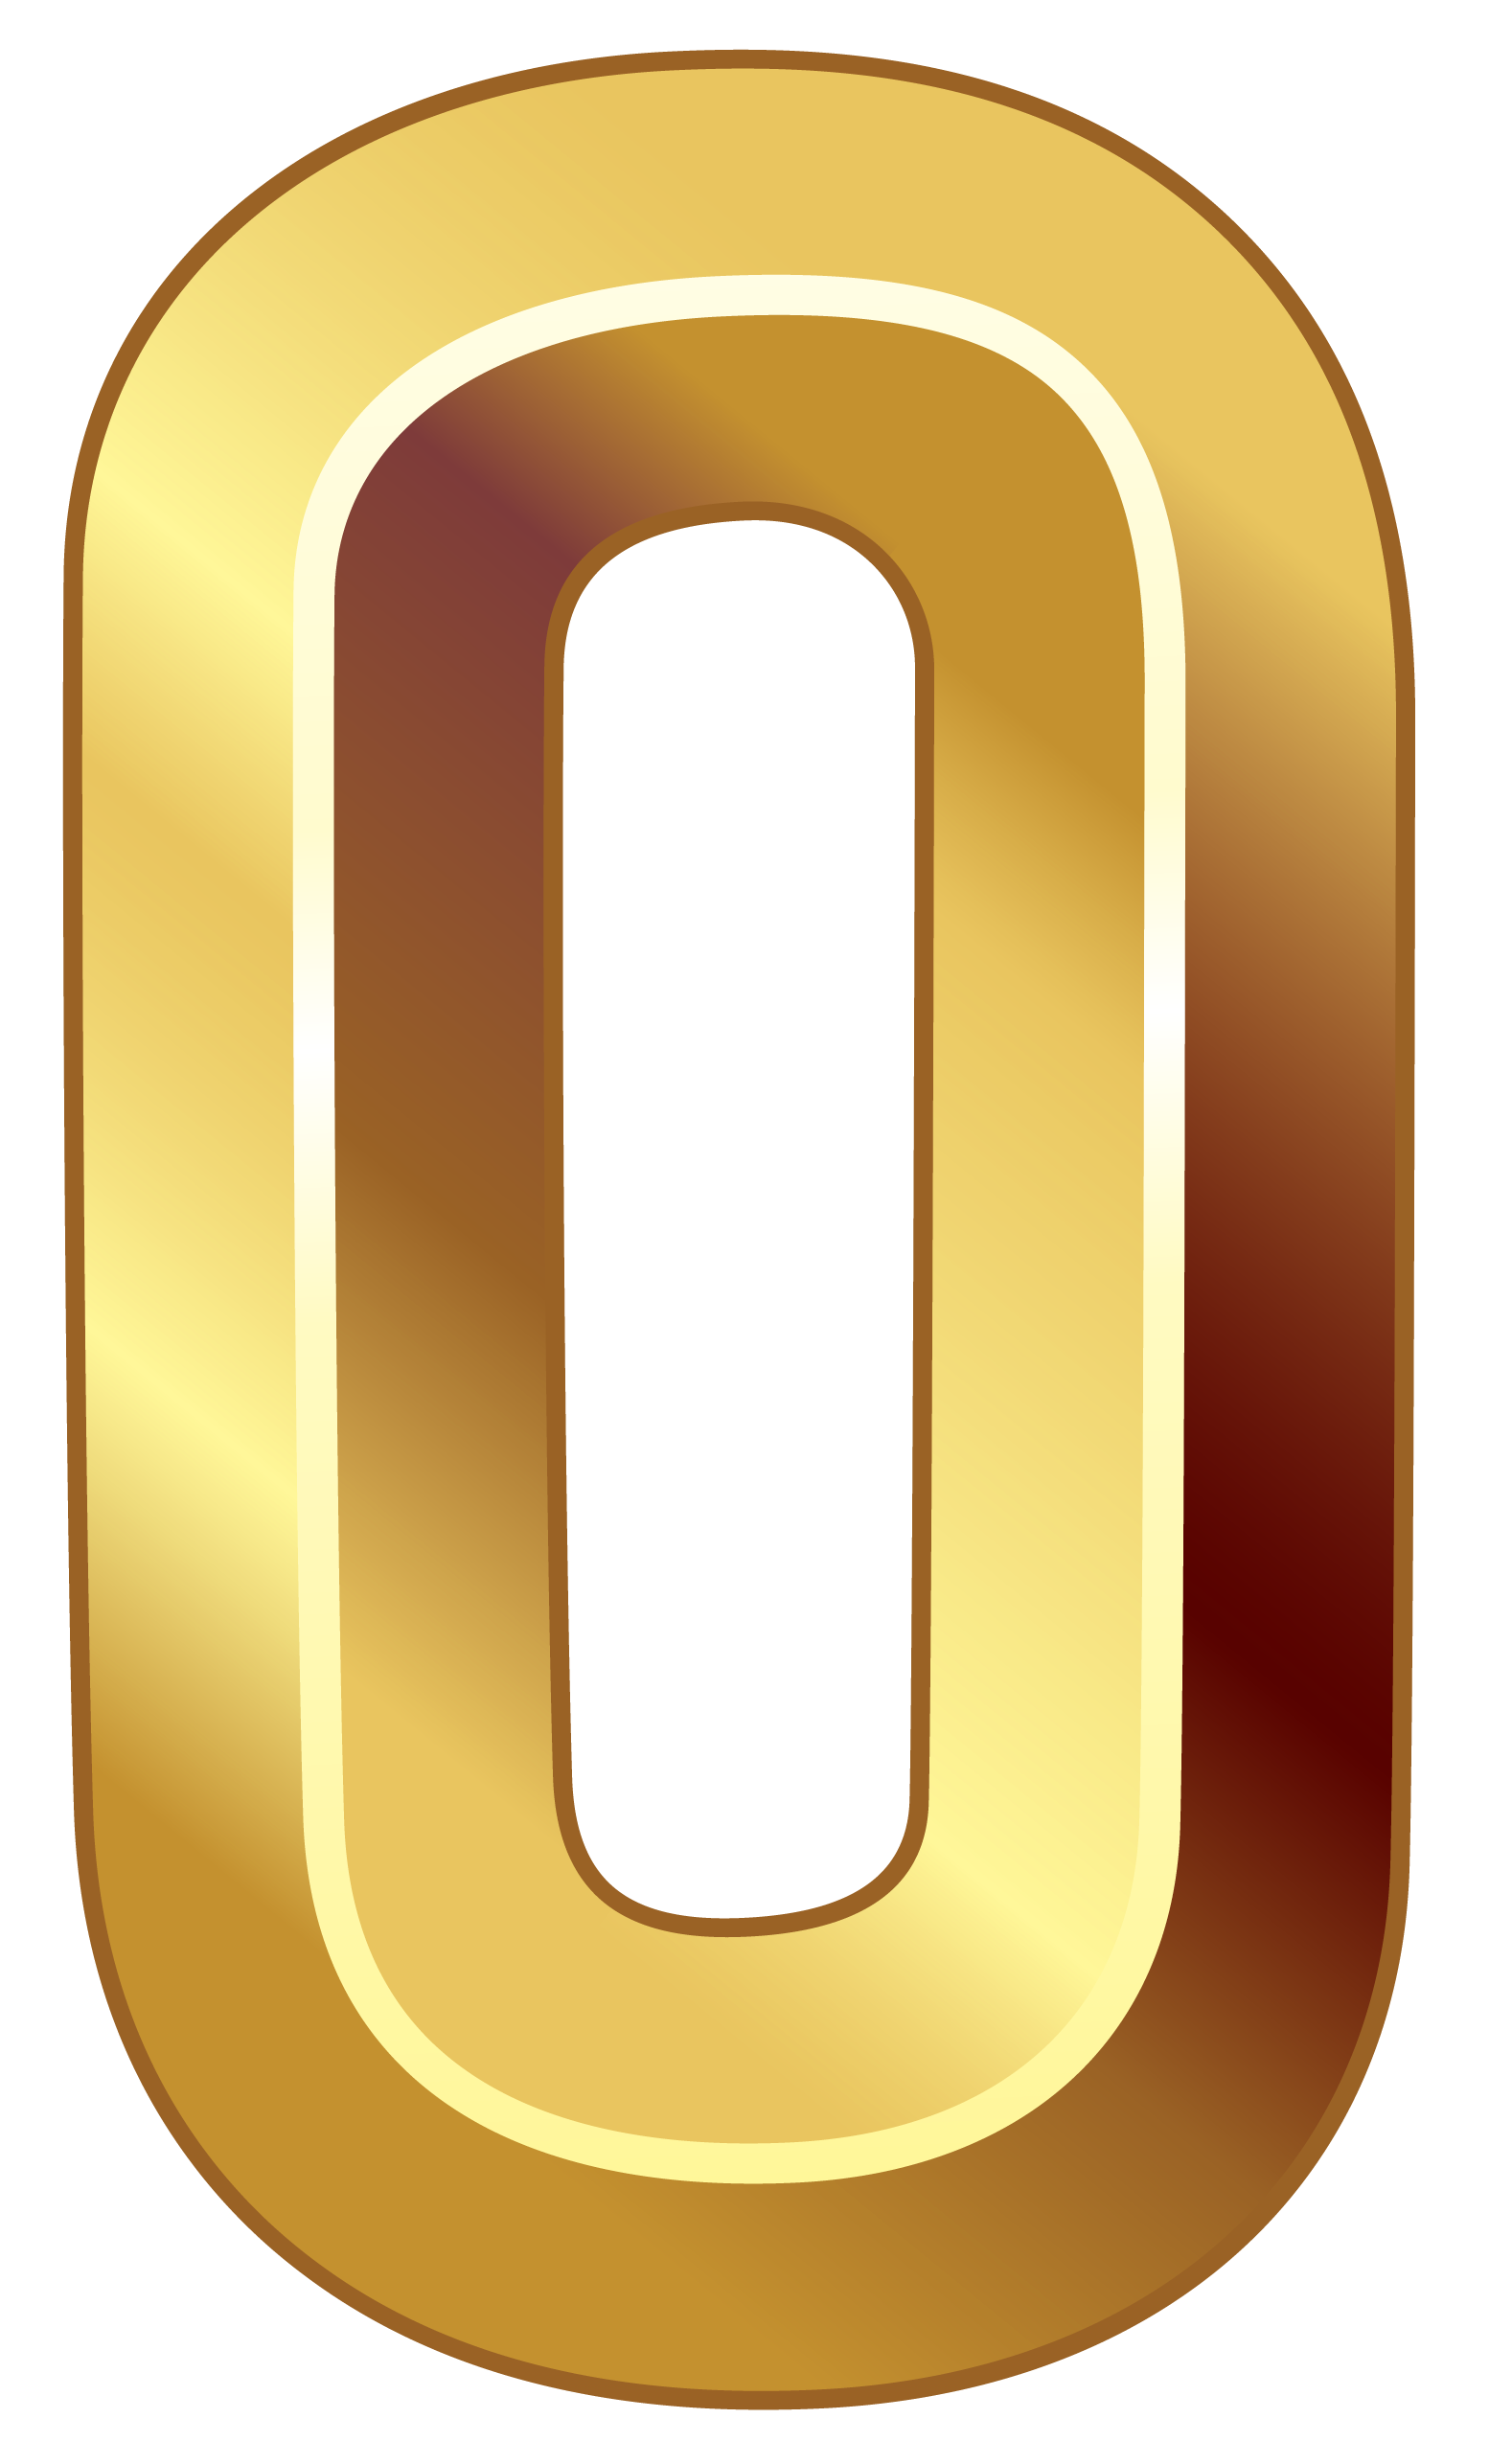 Gold Number Zero PNG Clipart Image.